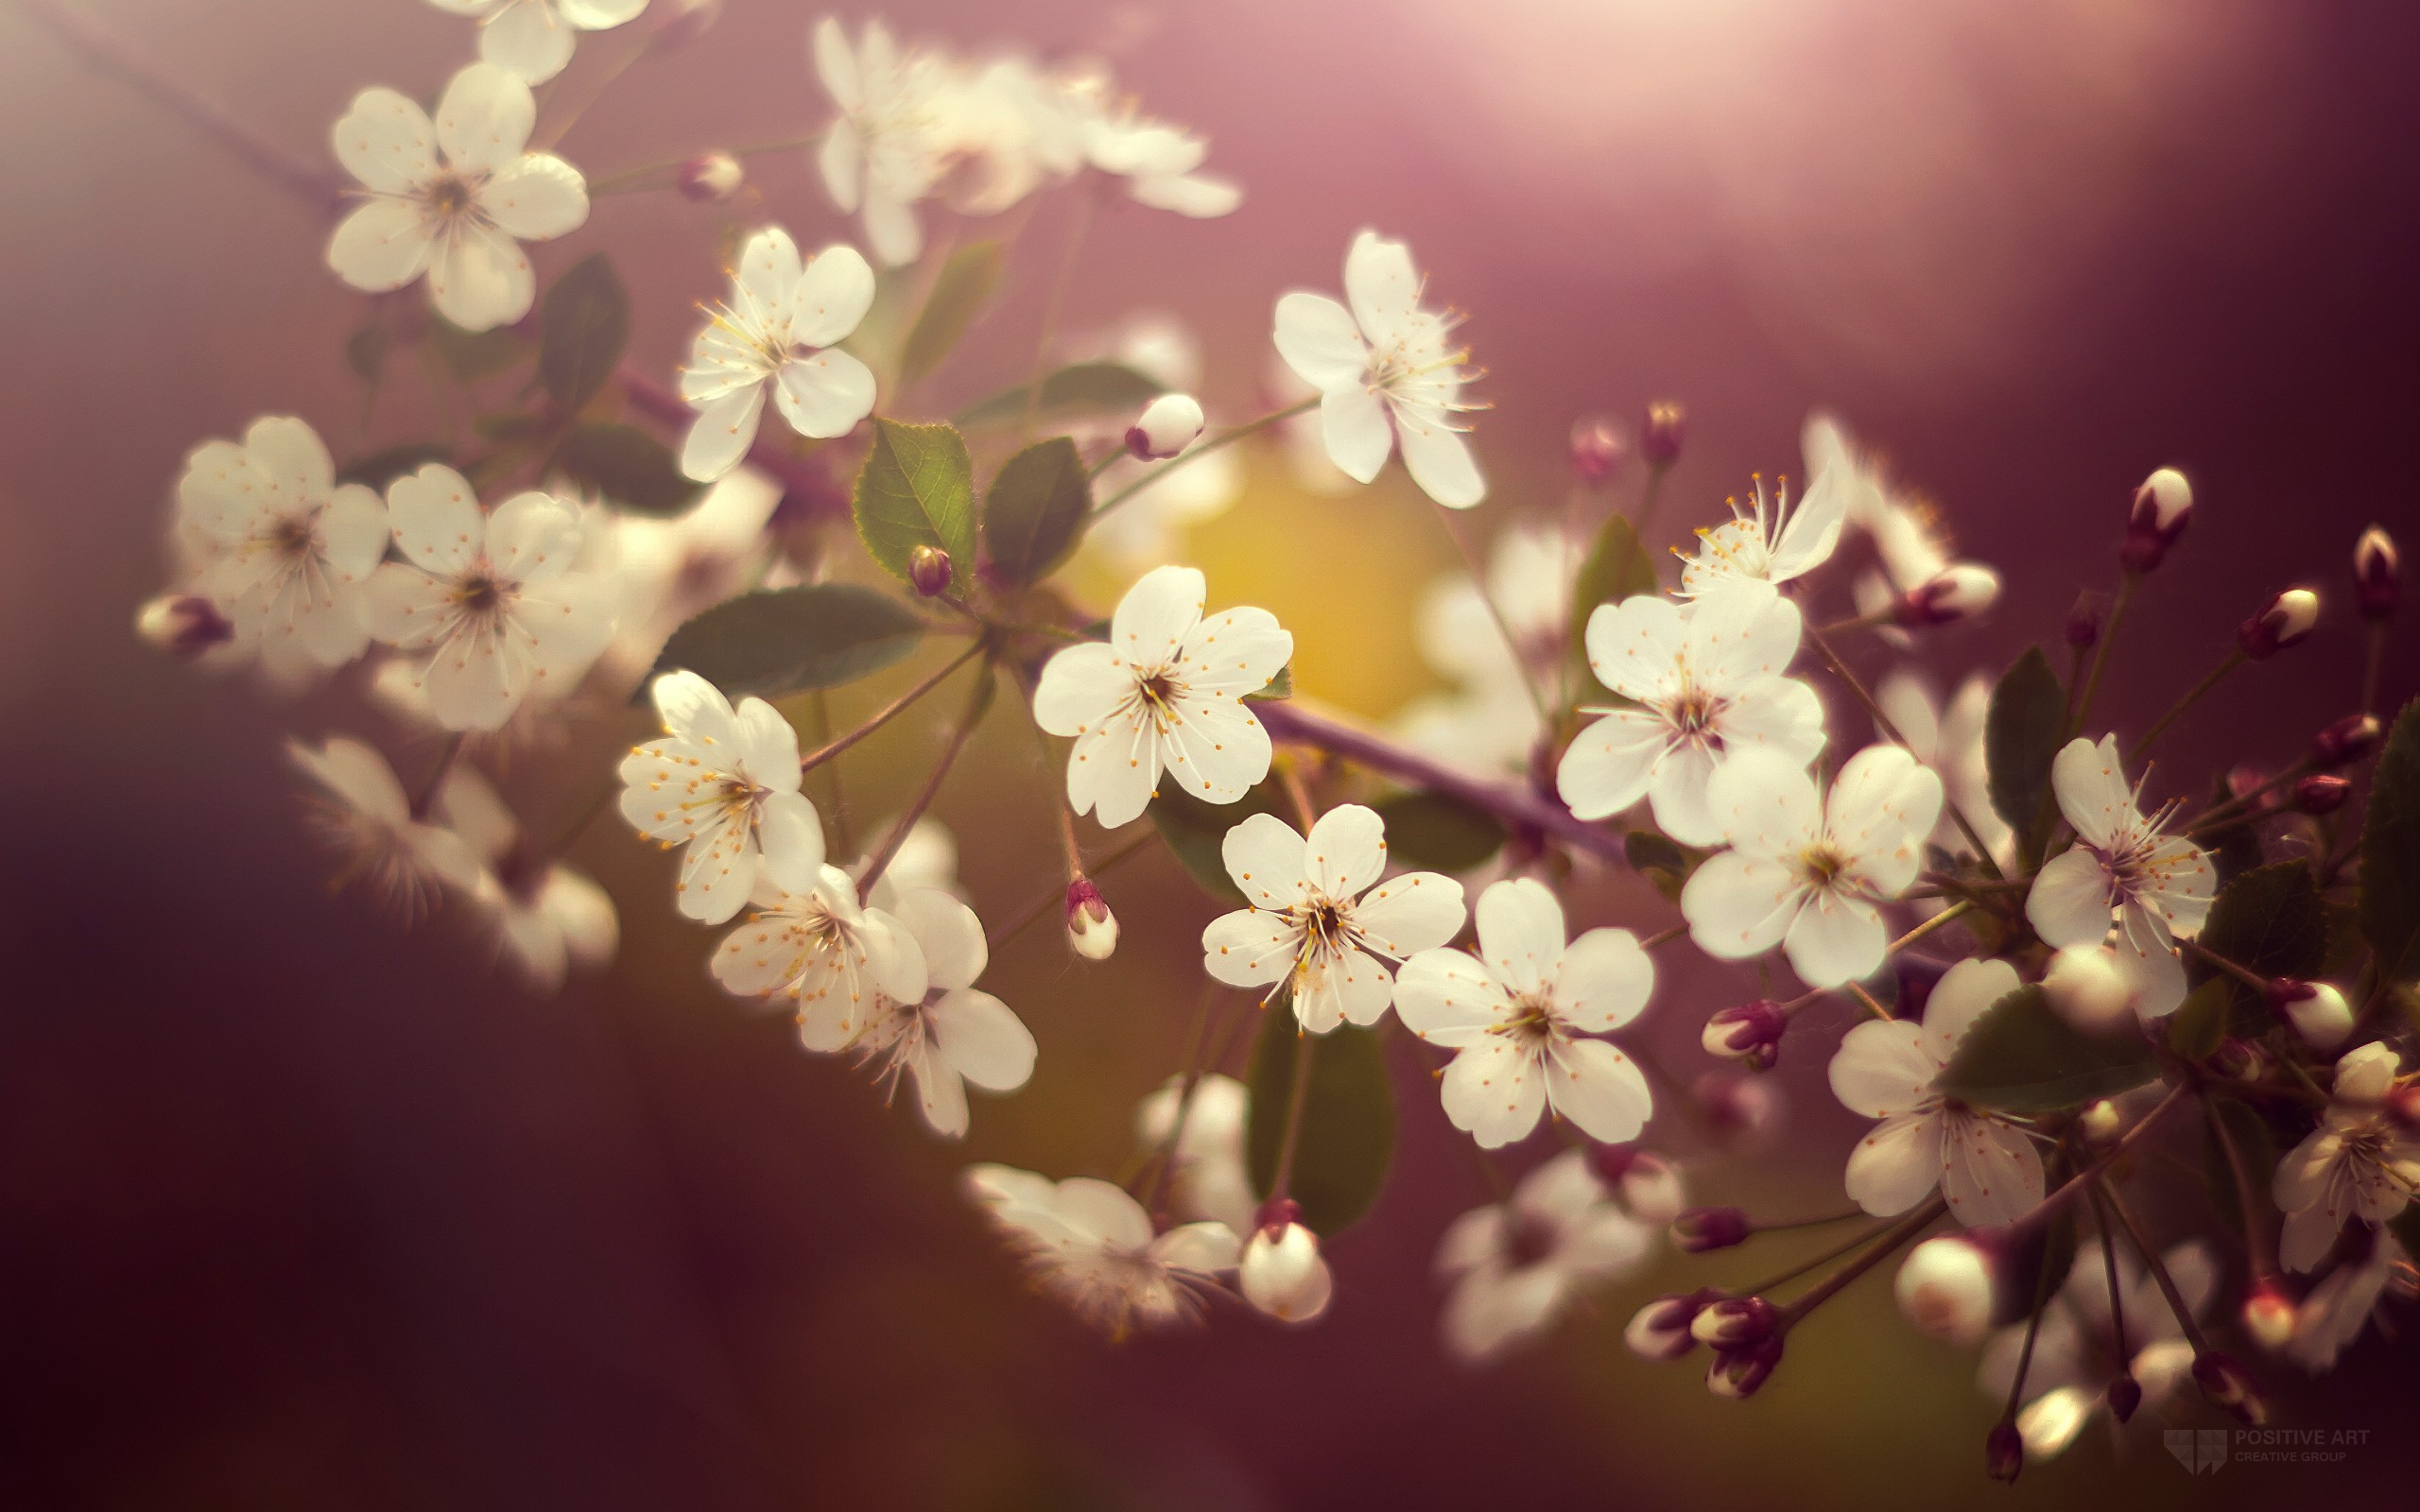 2560x1600 px Nice HD Photos of Blossom, Full HD 1080p Desktop Photos for PC&Mac, Laptop, Tablet, Mobile Phone